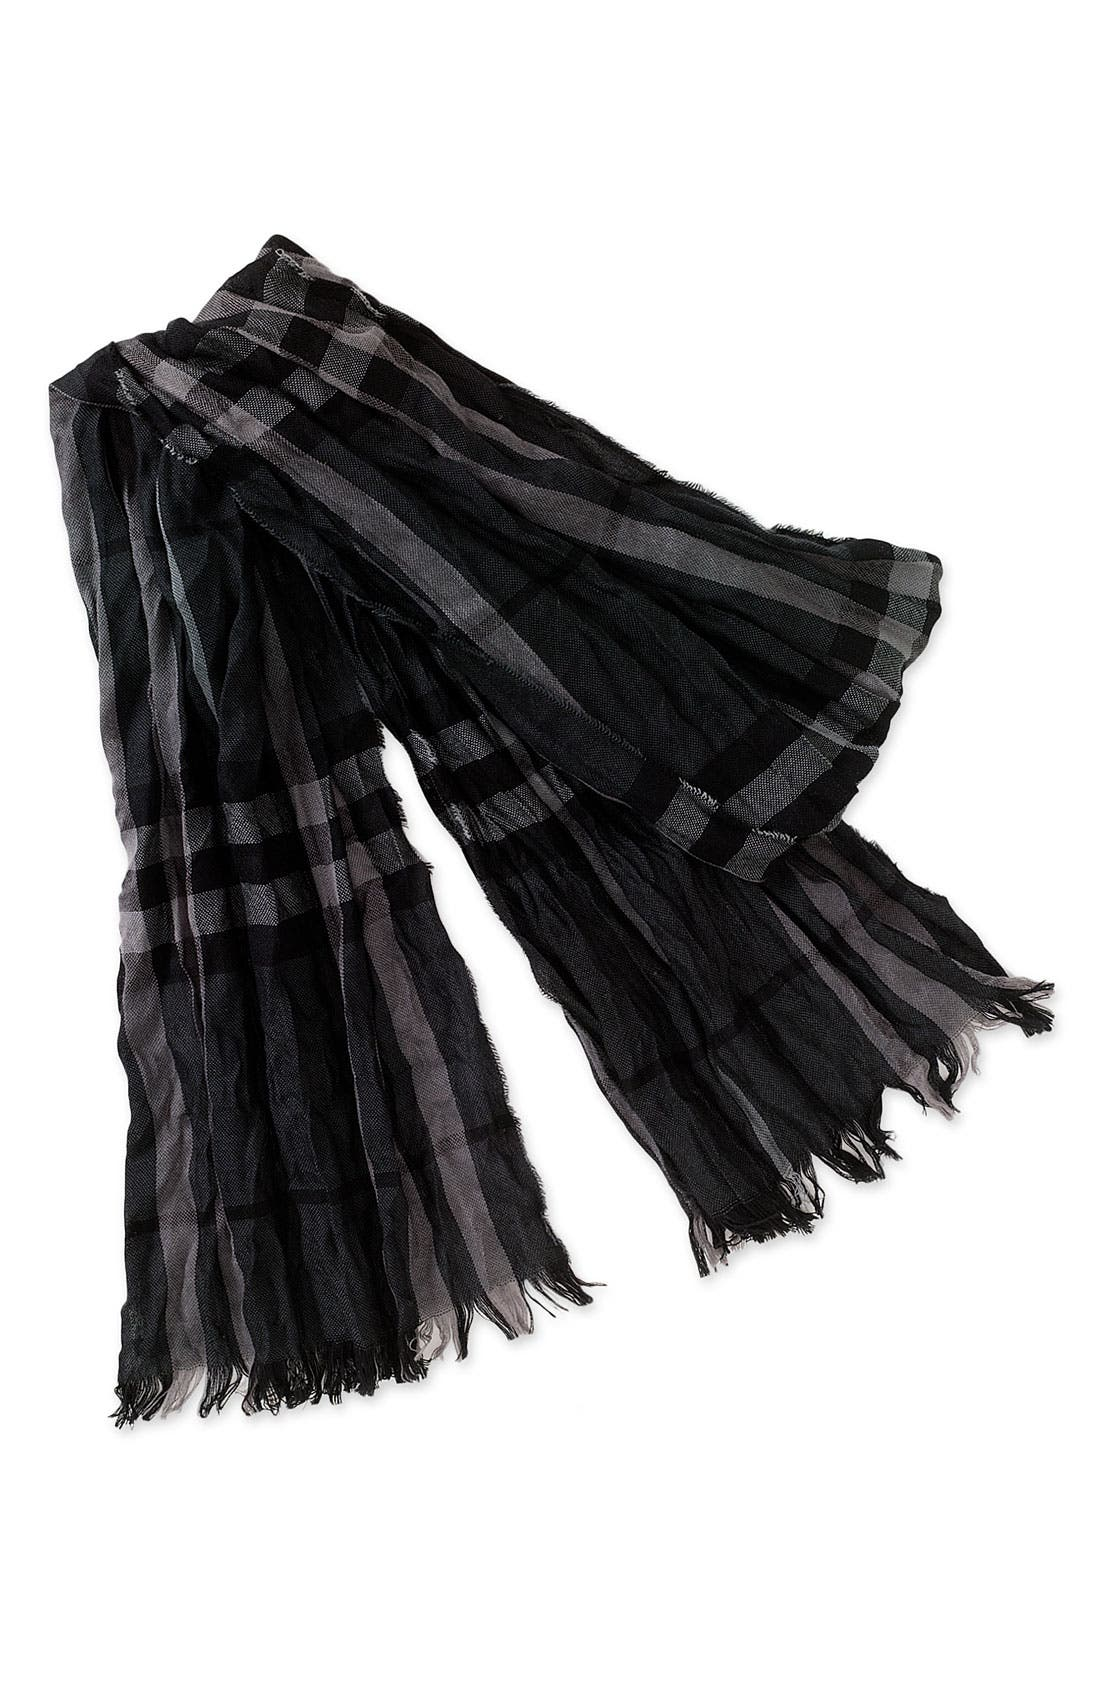 Main Image - Burberry Crinkled Merino Wool & Cashmere Scarf